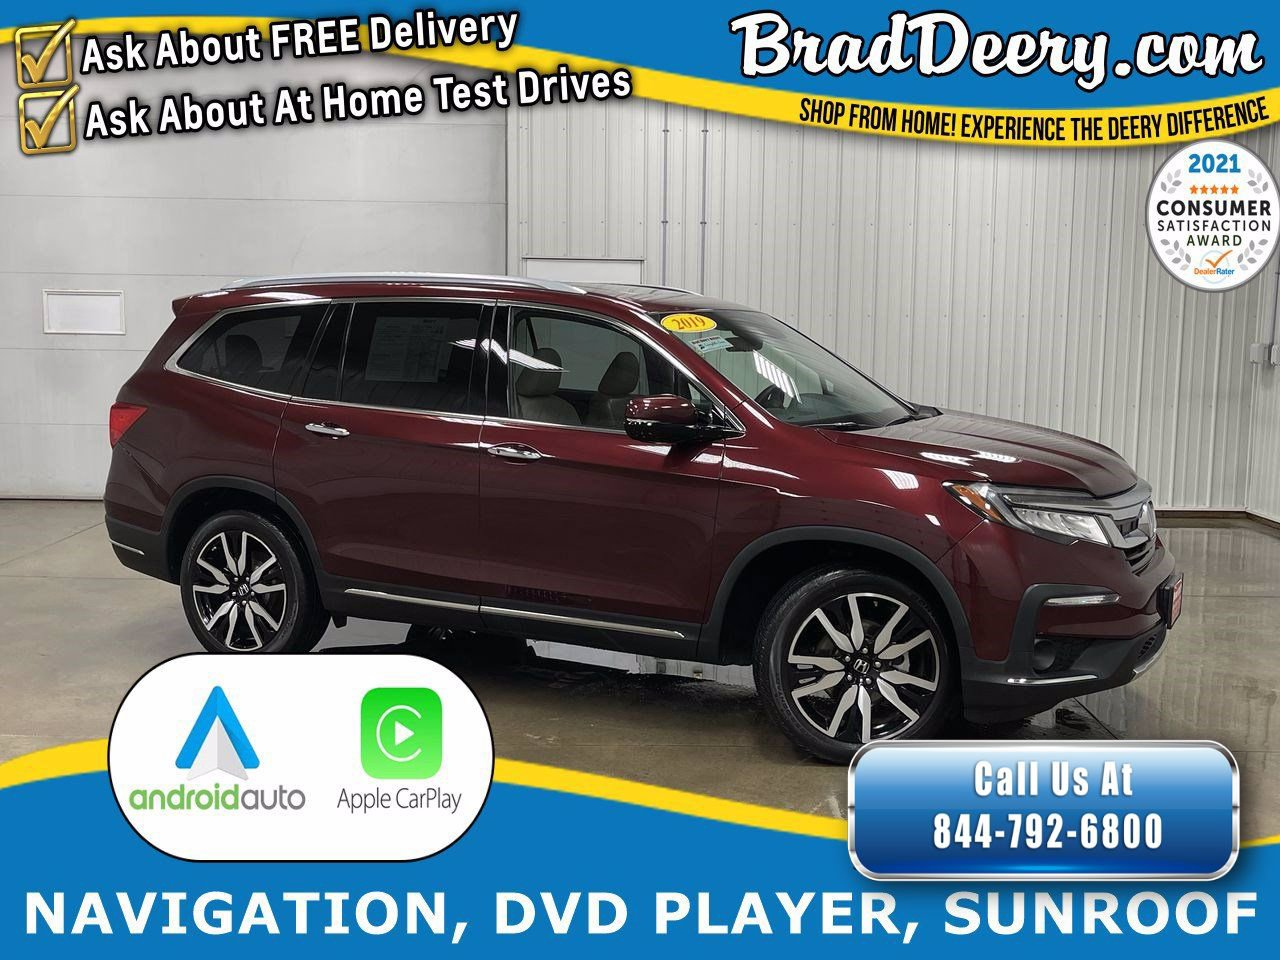 2019 Honda Pilot Touring 7-Passenger w/ DVD Rear Entertainment, Sunroof, Heated Leather Seats & 3rd Row Seating